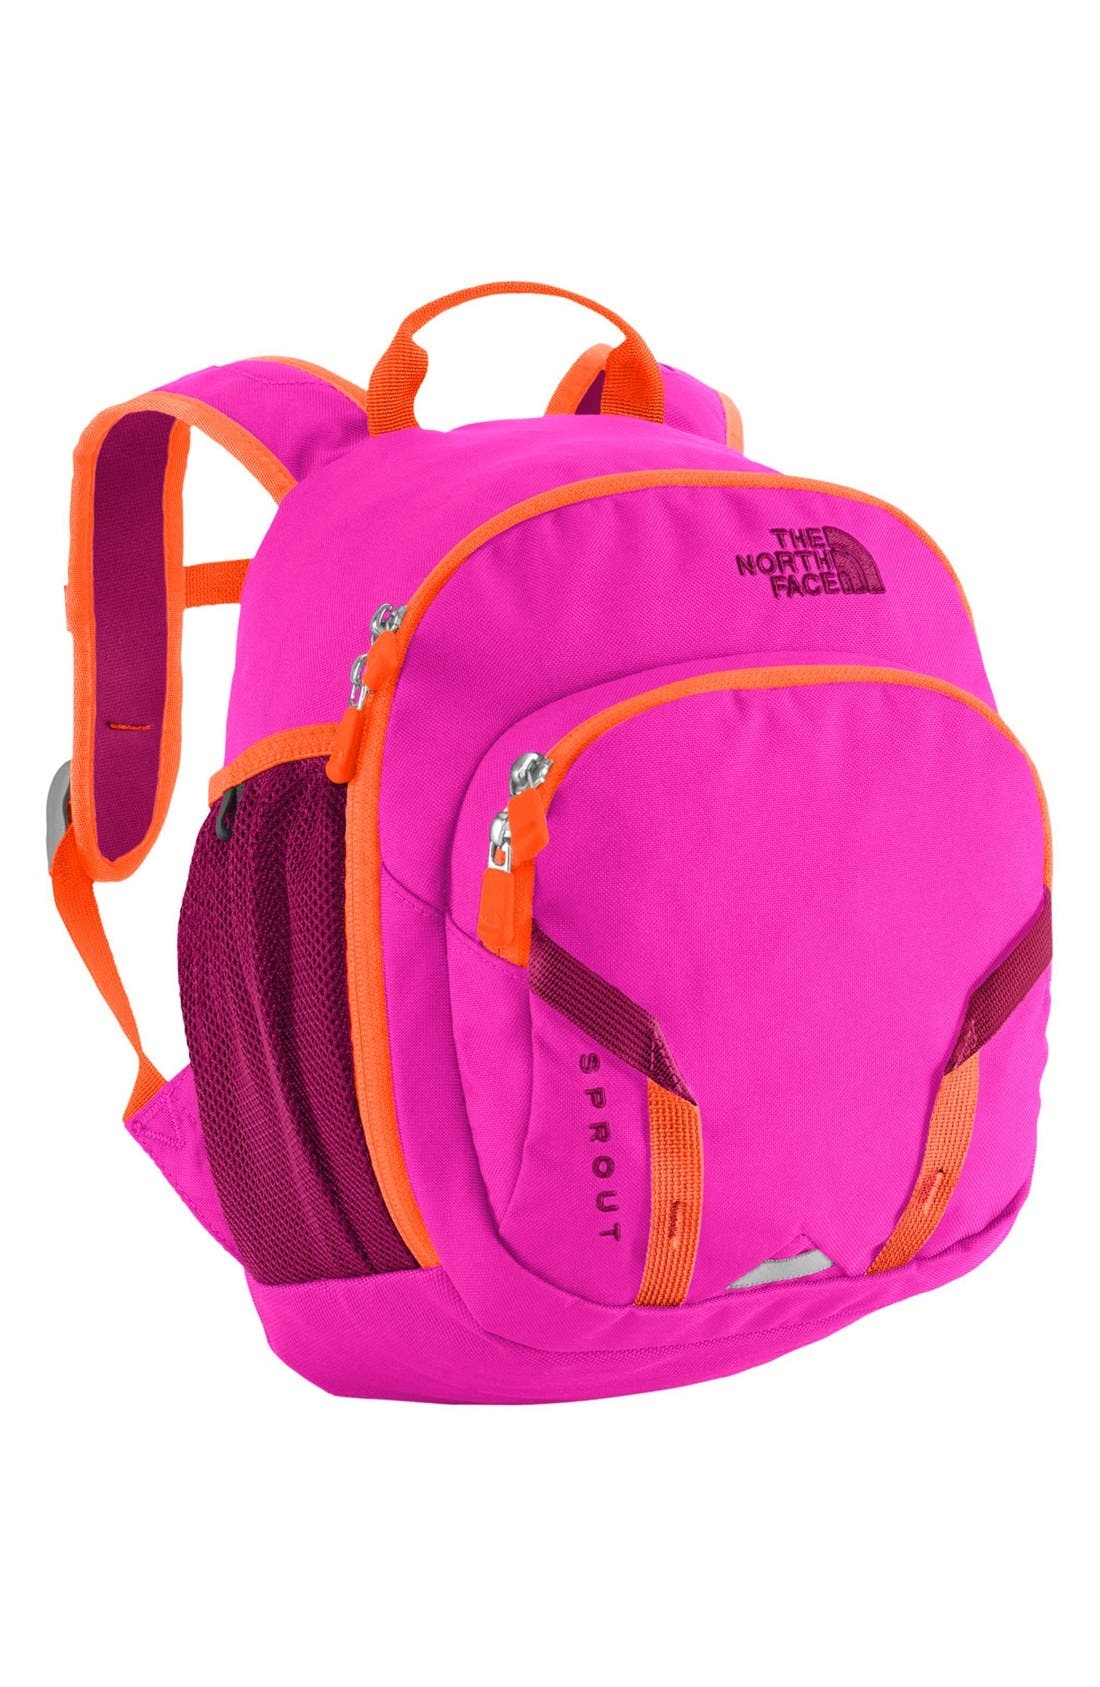 Alternate Image 1 Selected - The North Face 'Sprout' Backpack (Toddler Girls)